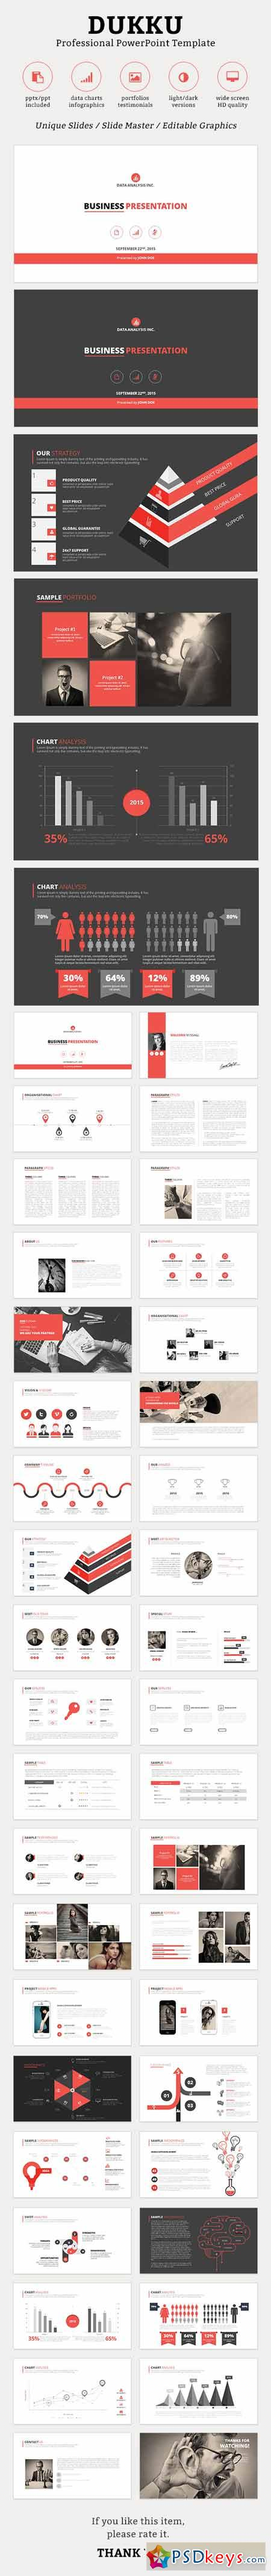 Dukku powerpoint template 13057919 free download photoshop vector dukku powerpoint template 13057919 toneelgroepblik